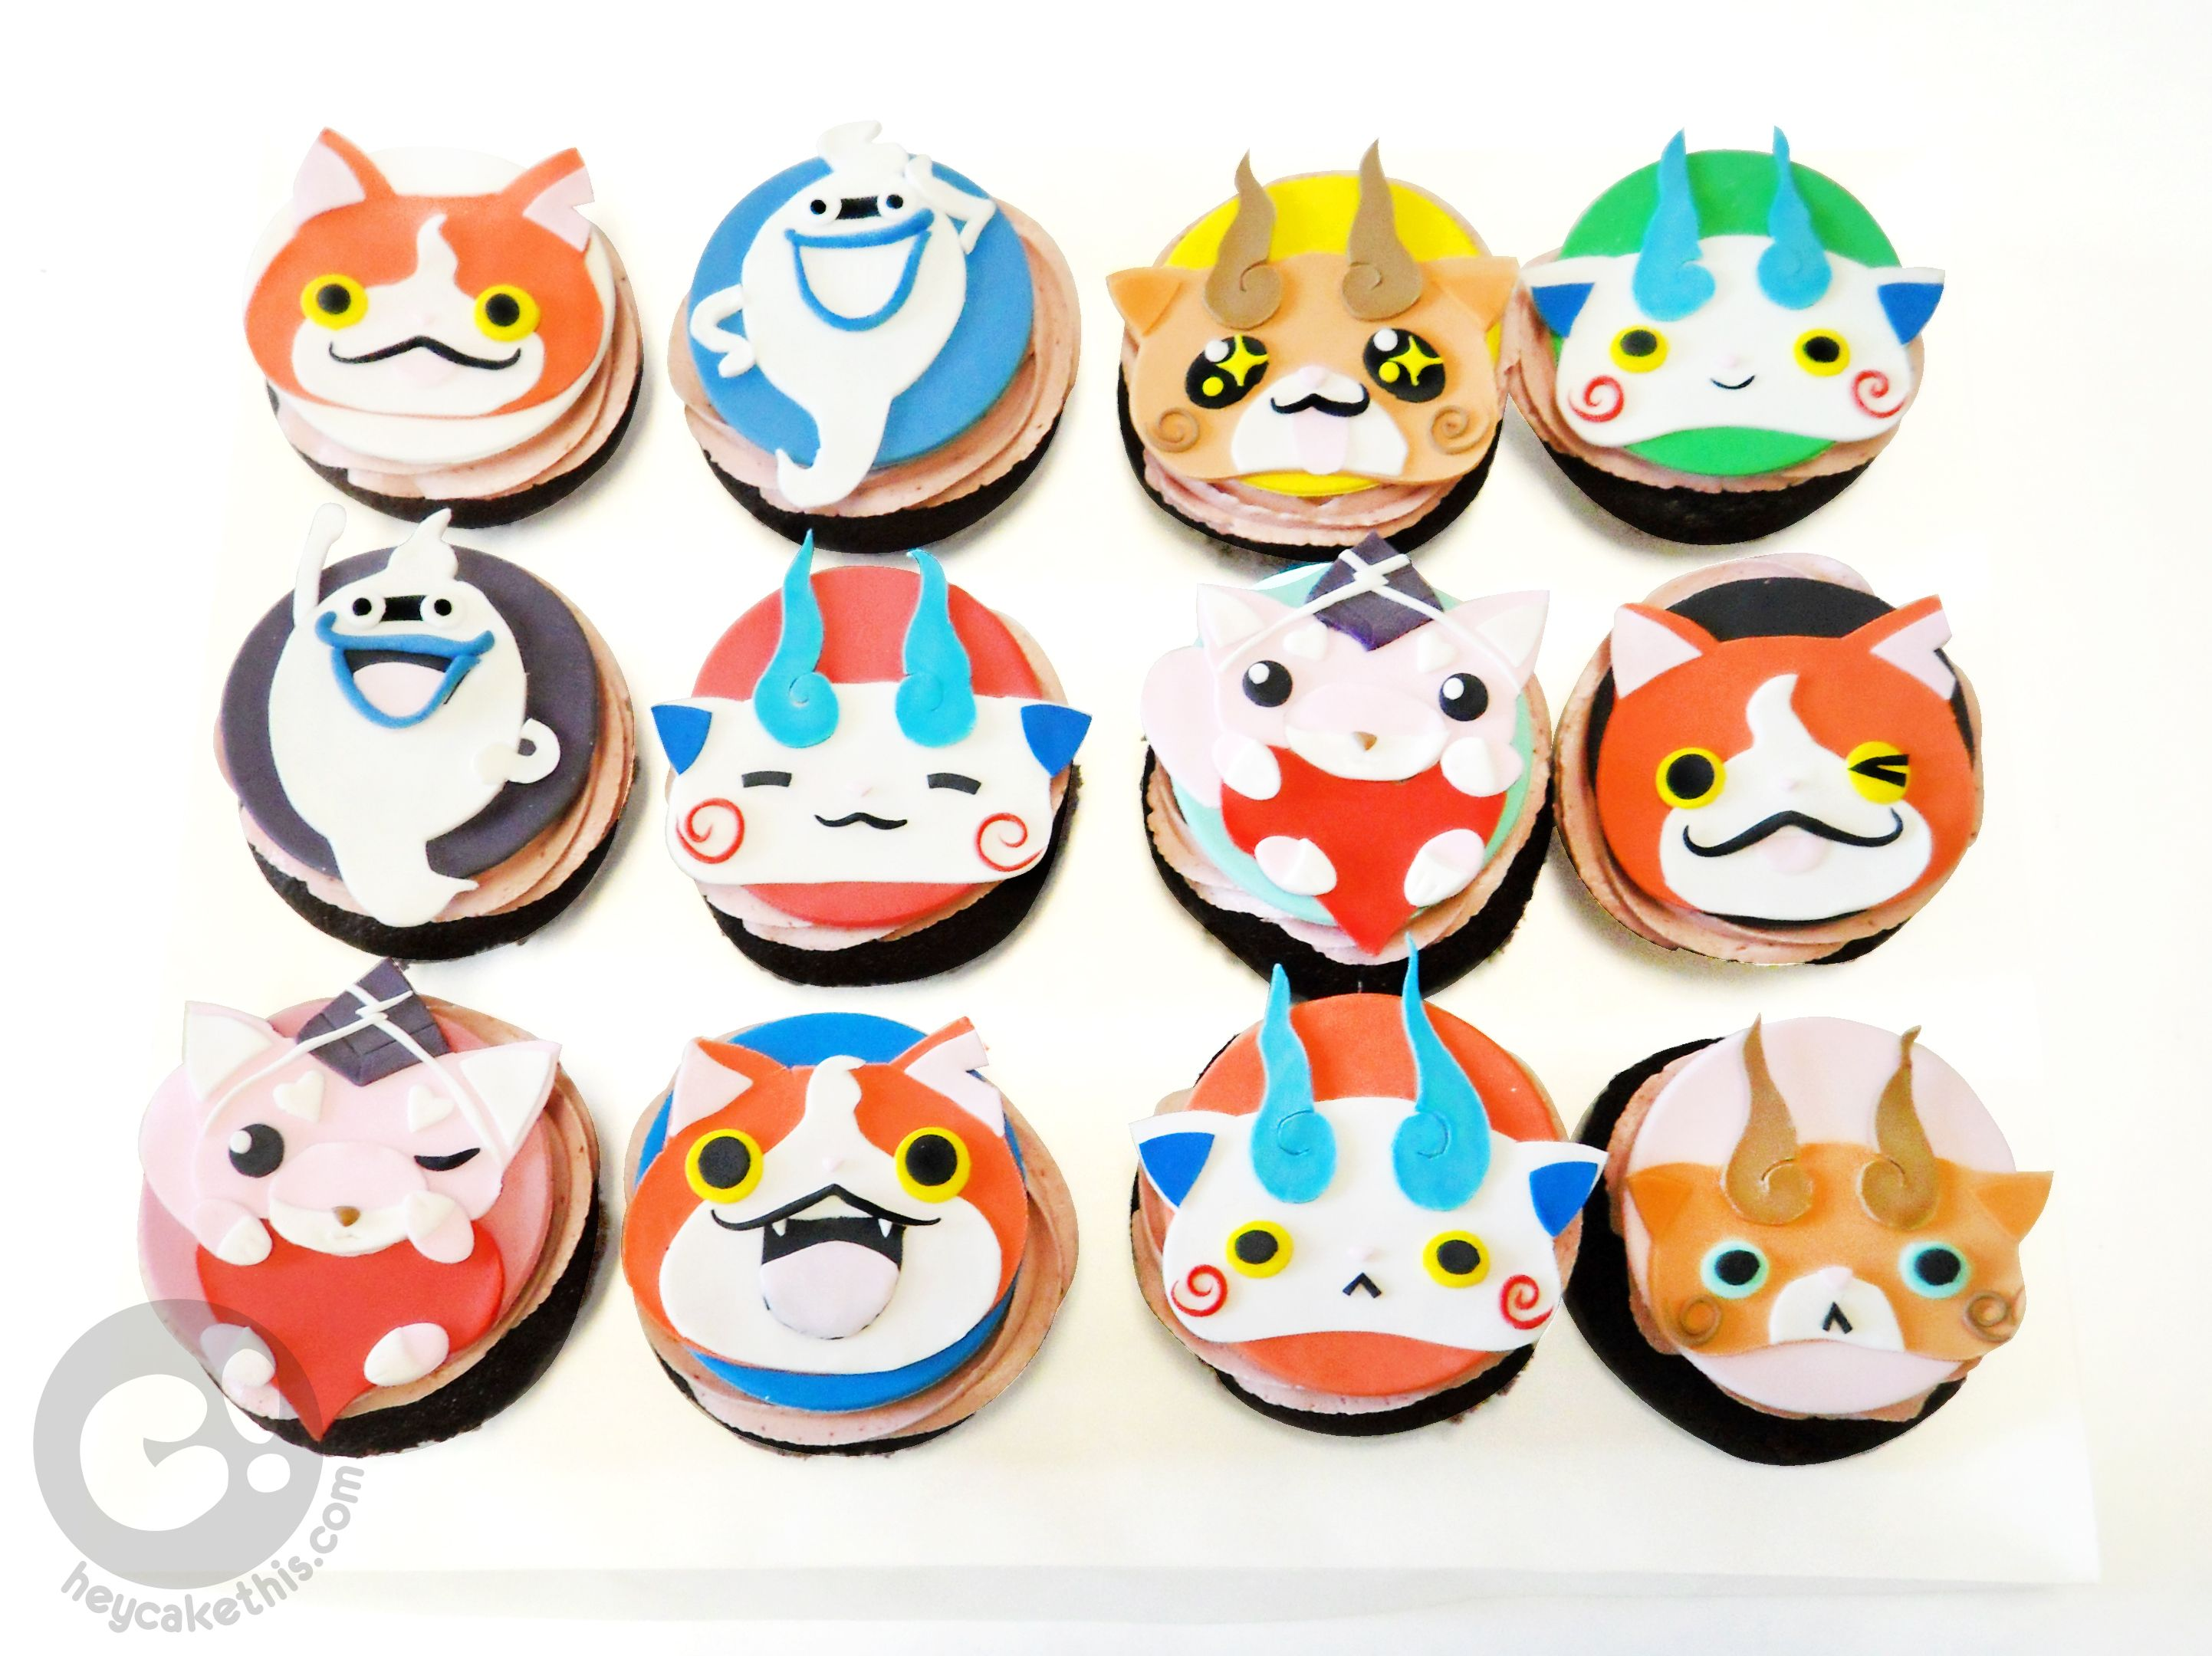 Yo Kai Watch Character Cupcakes With Jibanyan Whisper Koma san